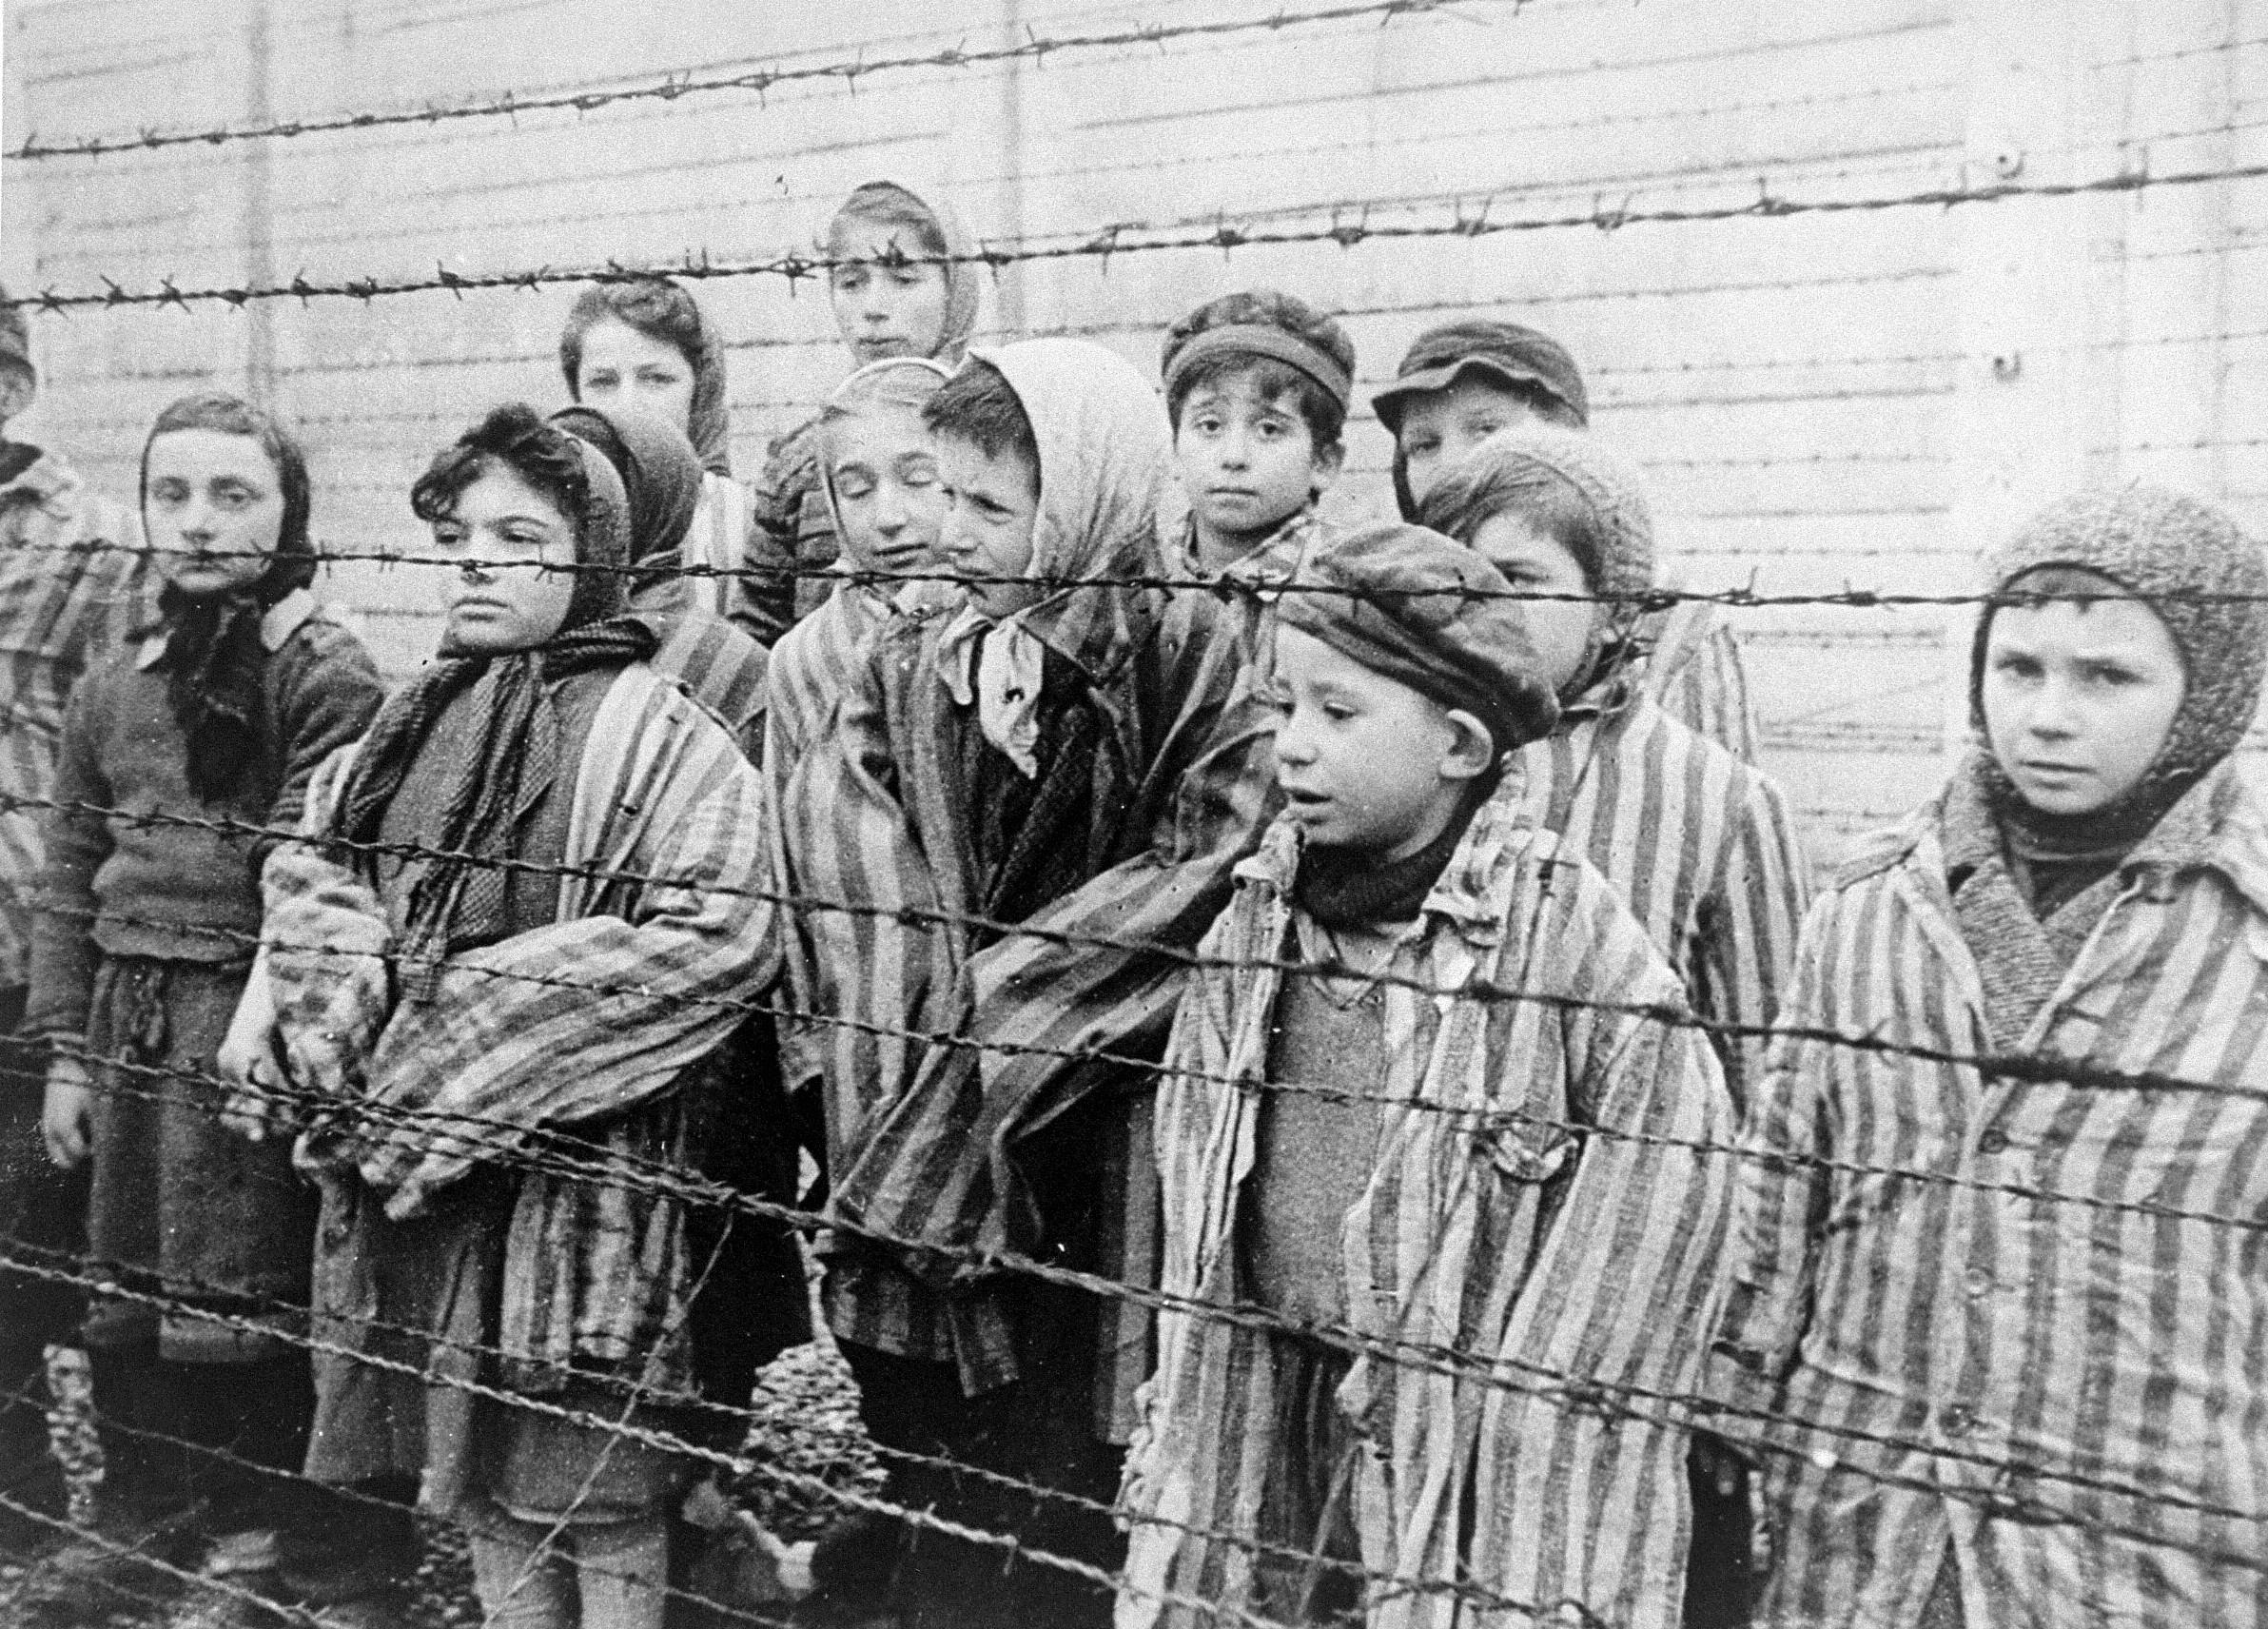 Still photograph from the Soviet Film of the liberation of Auschwitz, taken by the film unit of the First Ukrainian Front, shot over a period of several months beginning on January 27, 1945 by Alexander Voronzow and others in his group, ordered by Mikhael Oschurkow, head of the photography unit. Child survivors of Auschwitz, wearing adult-size prisoner jackets, stand behind a barbed wire fence. Collection: USHMM/Belarusian State Archive of Documentary Film and Photography, USA. Public Domain.